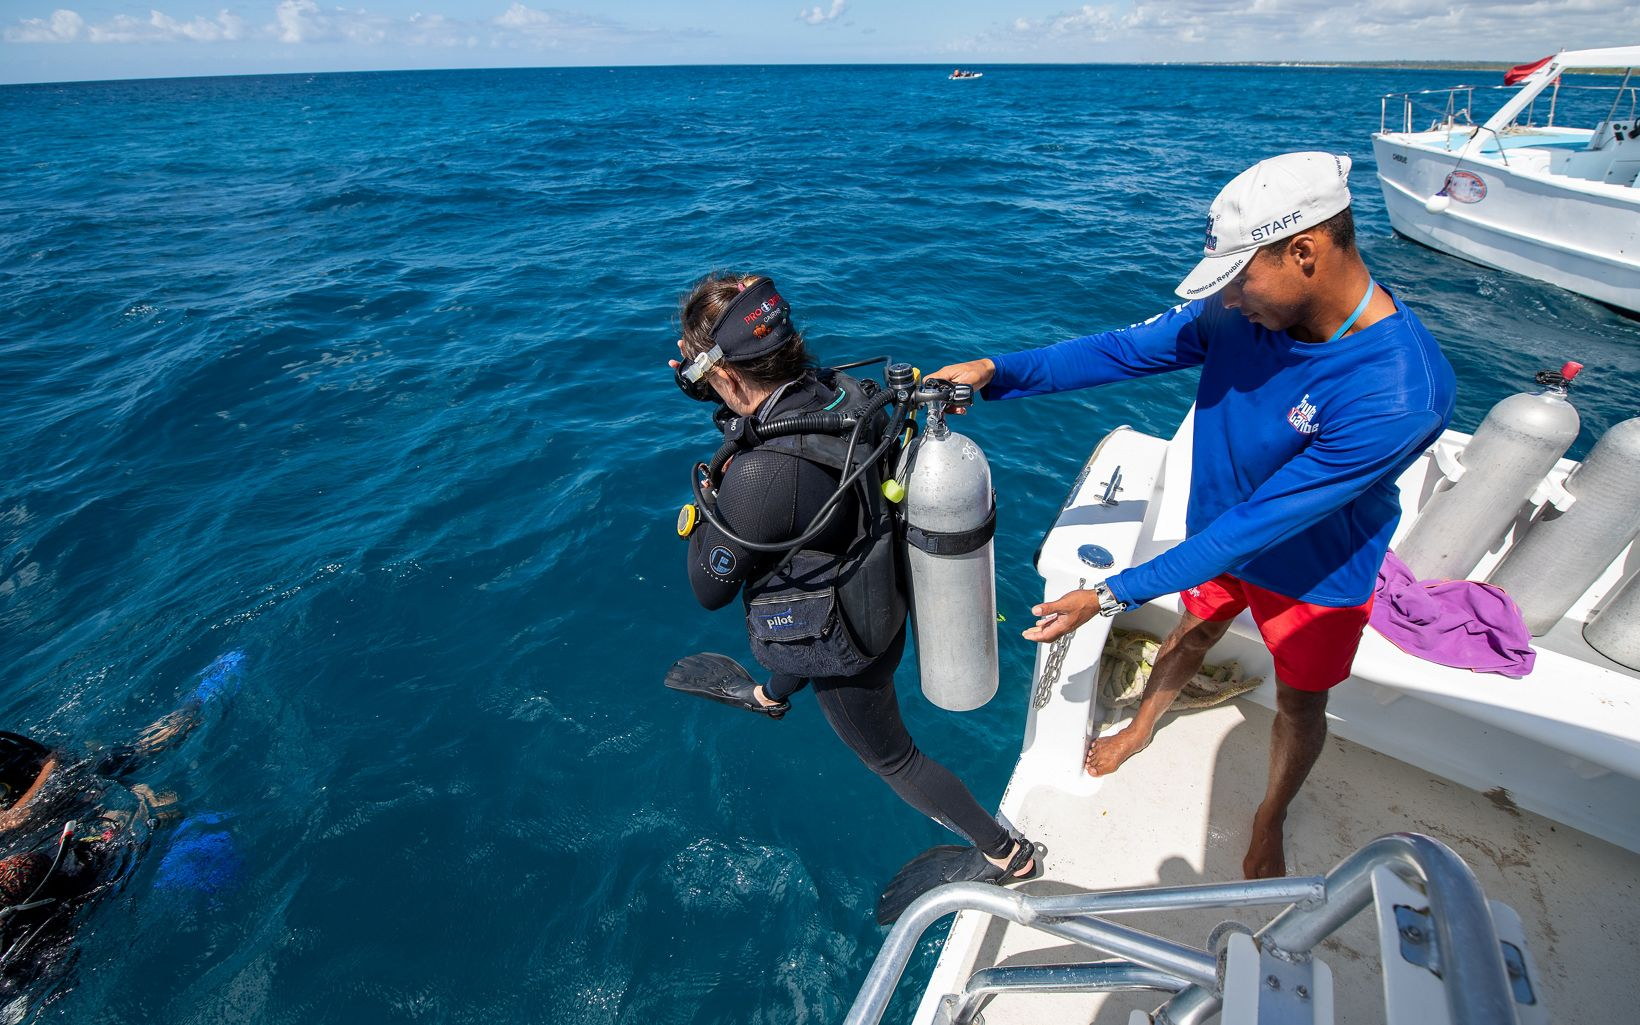 A diver steps off a boat in the Caribbean Sea as part of a coral restoration project off the coast of the Dominican Republic.